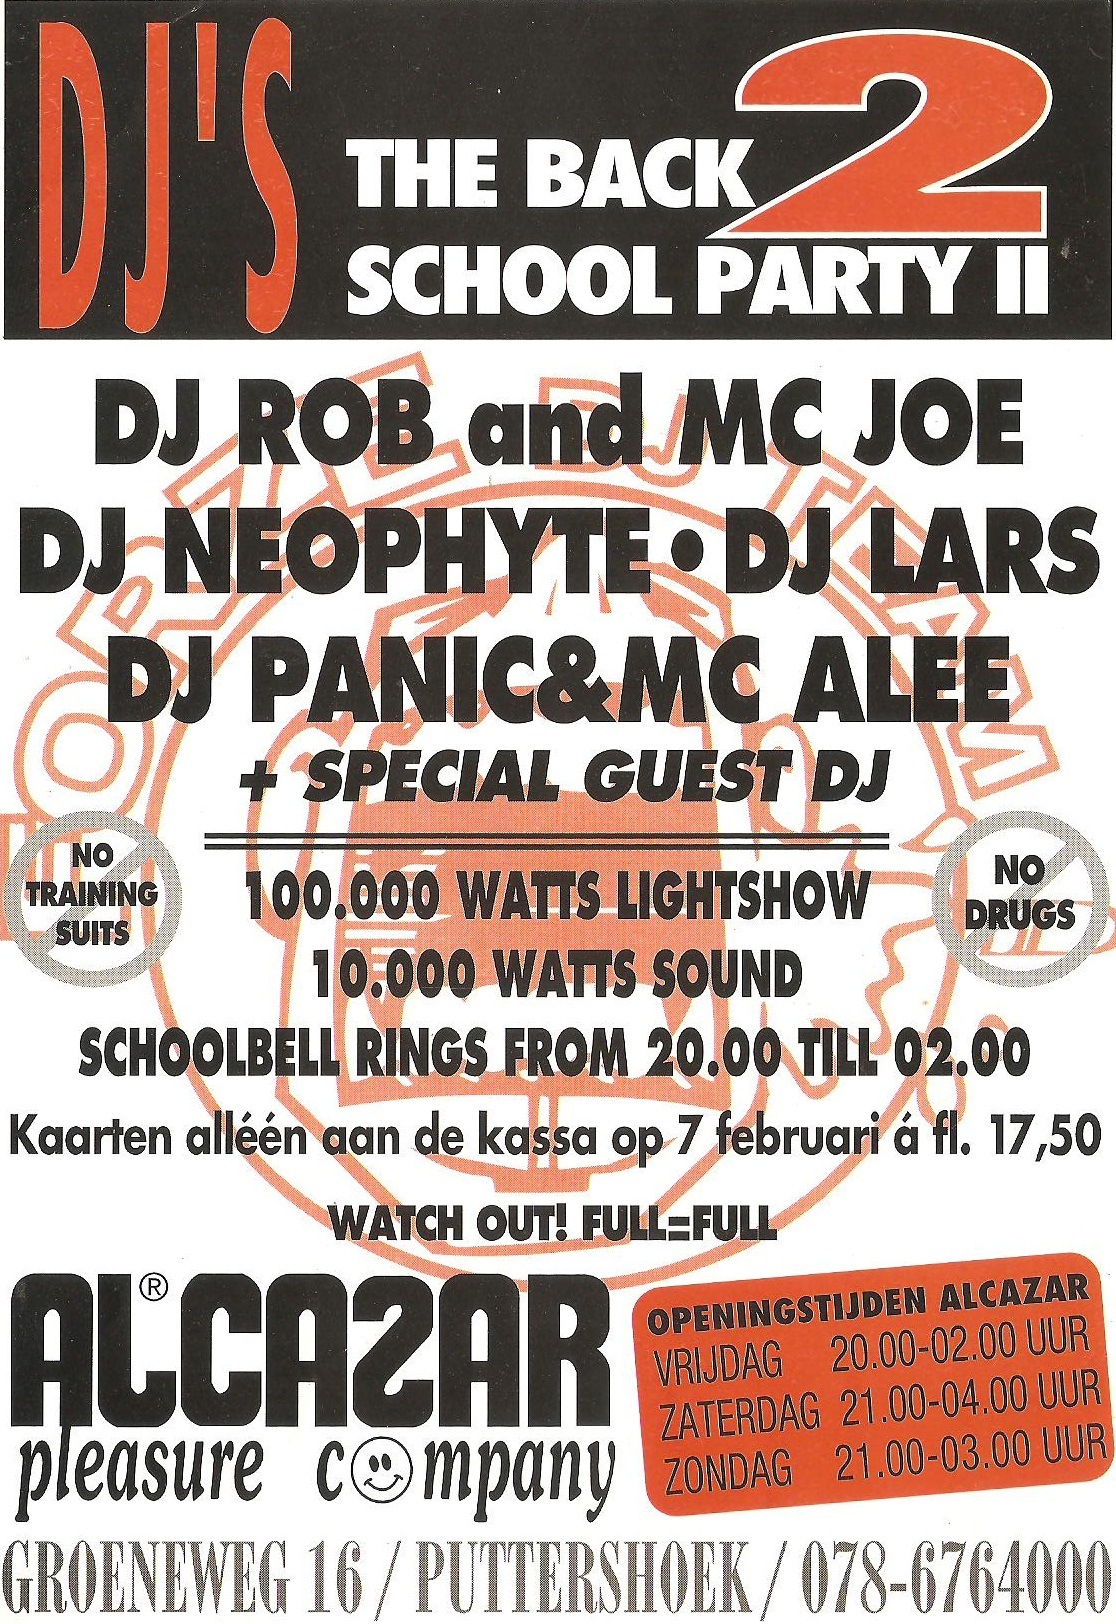 The Back 2 School Party II - Tickets, line-up & info